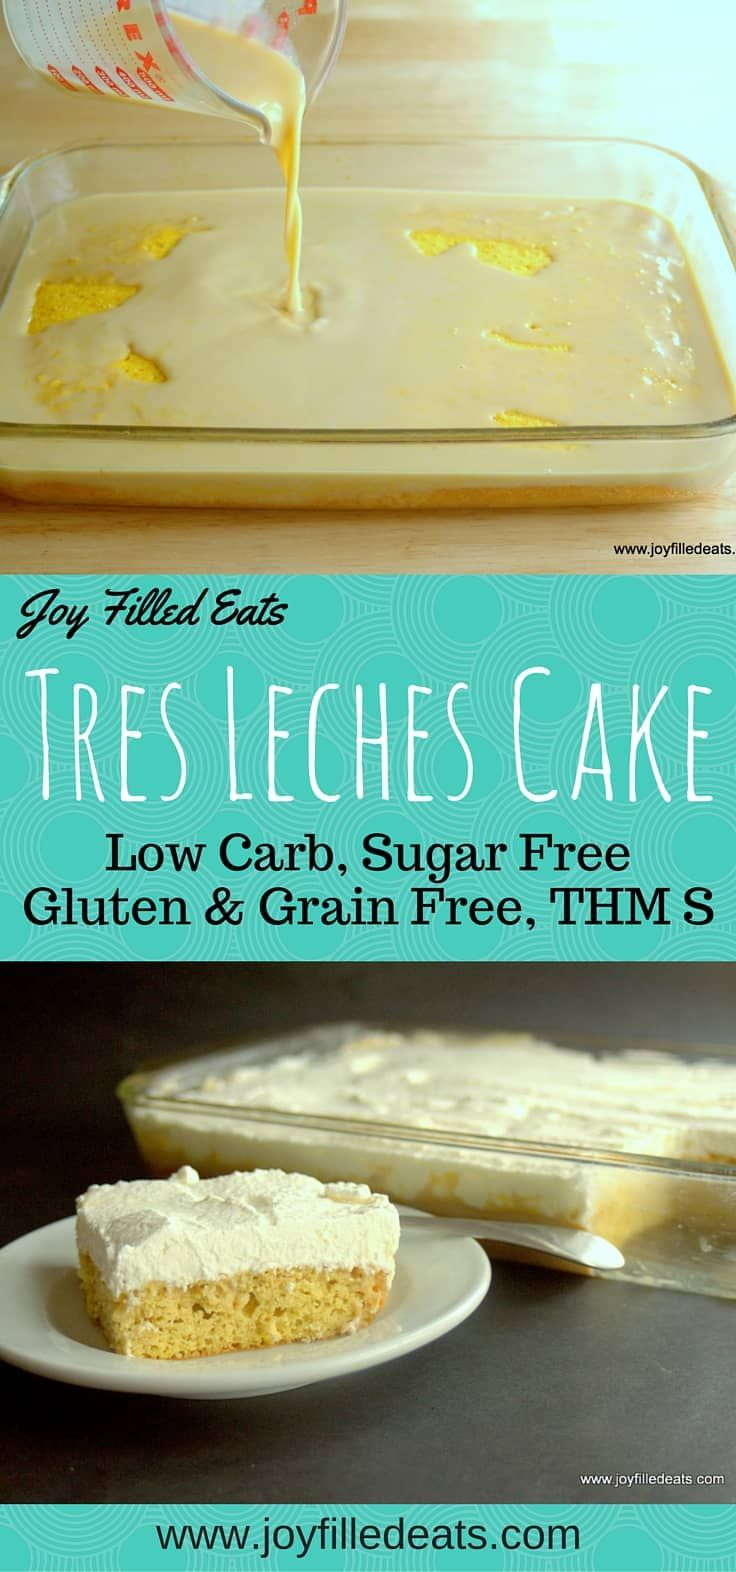 769 best THM Recipes images on Pinterest   Health foods, Kitchens ...